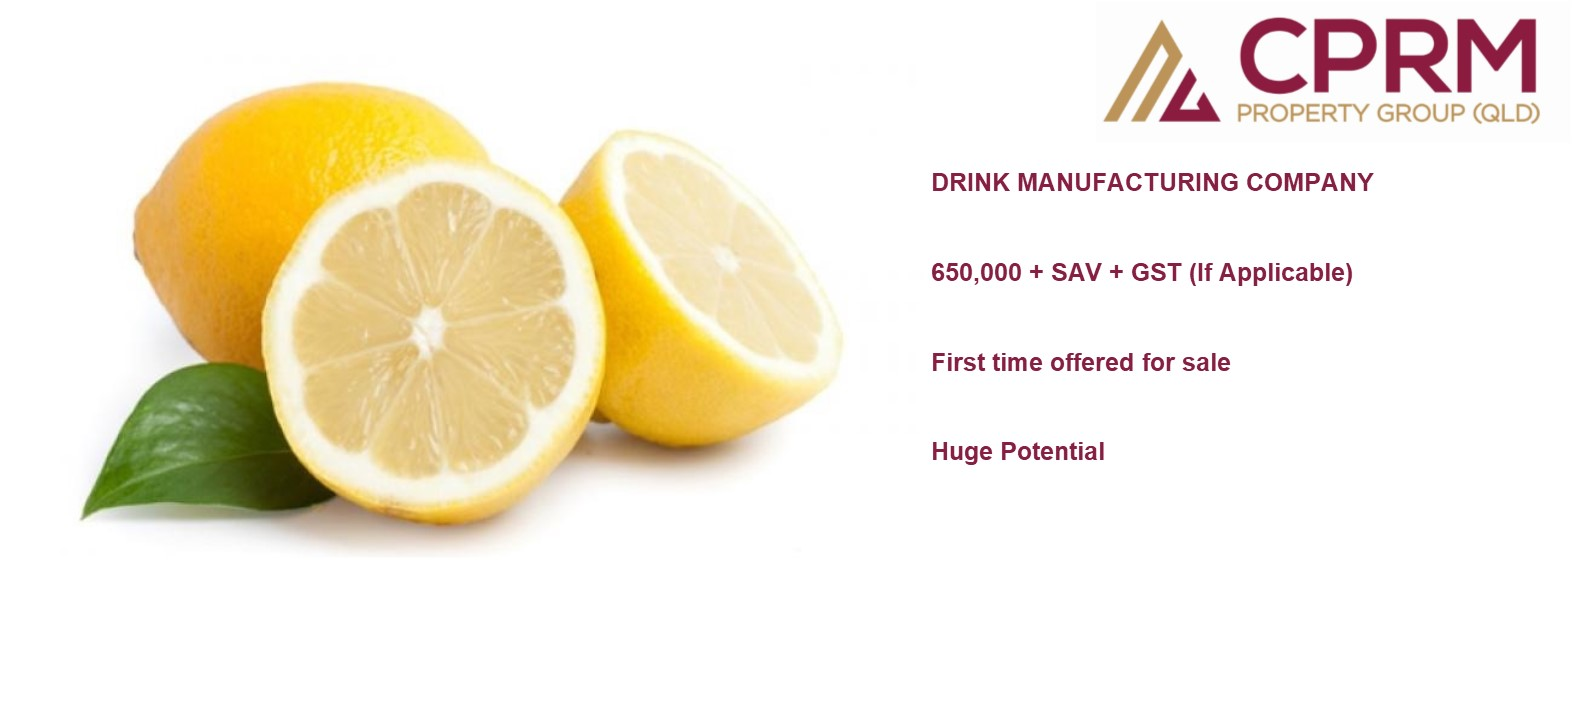 Fruit Juice Company For SALE $650,000